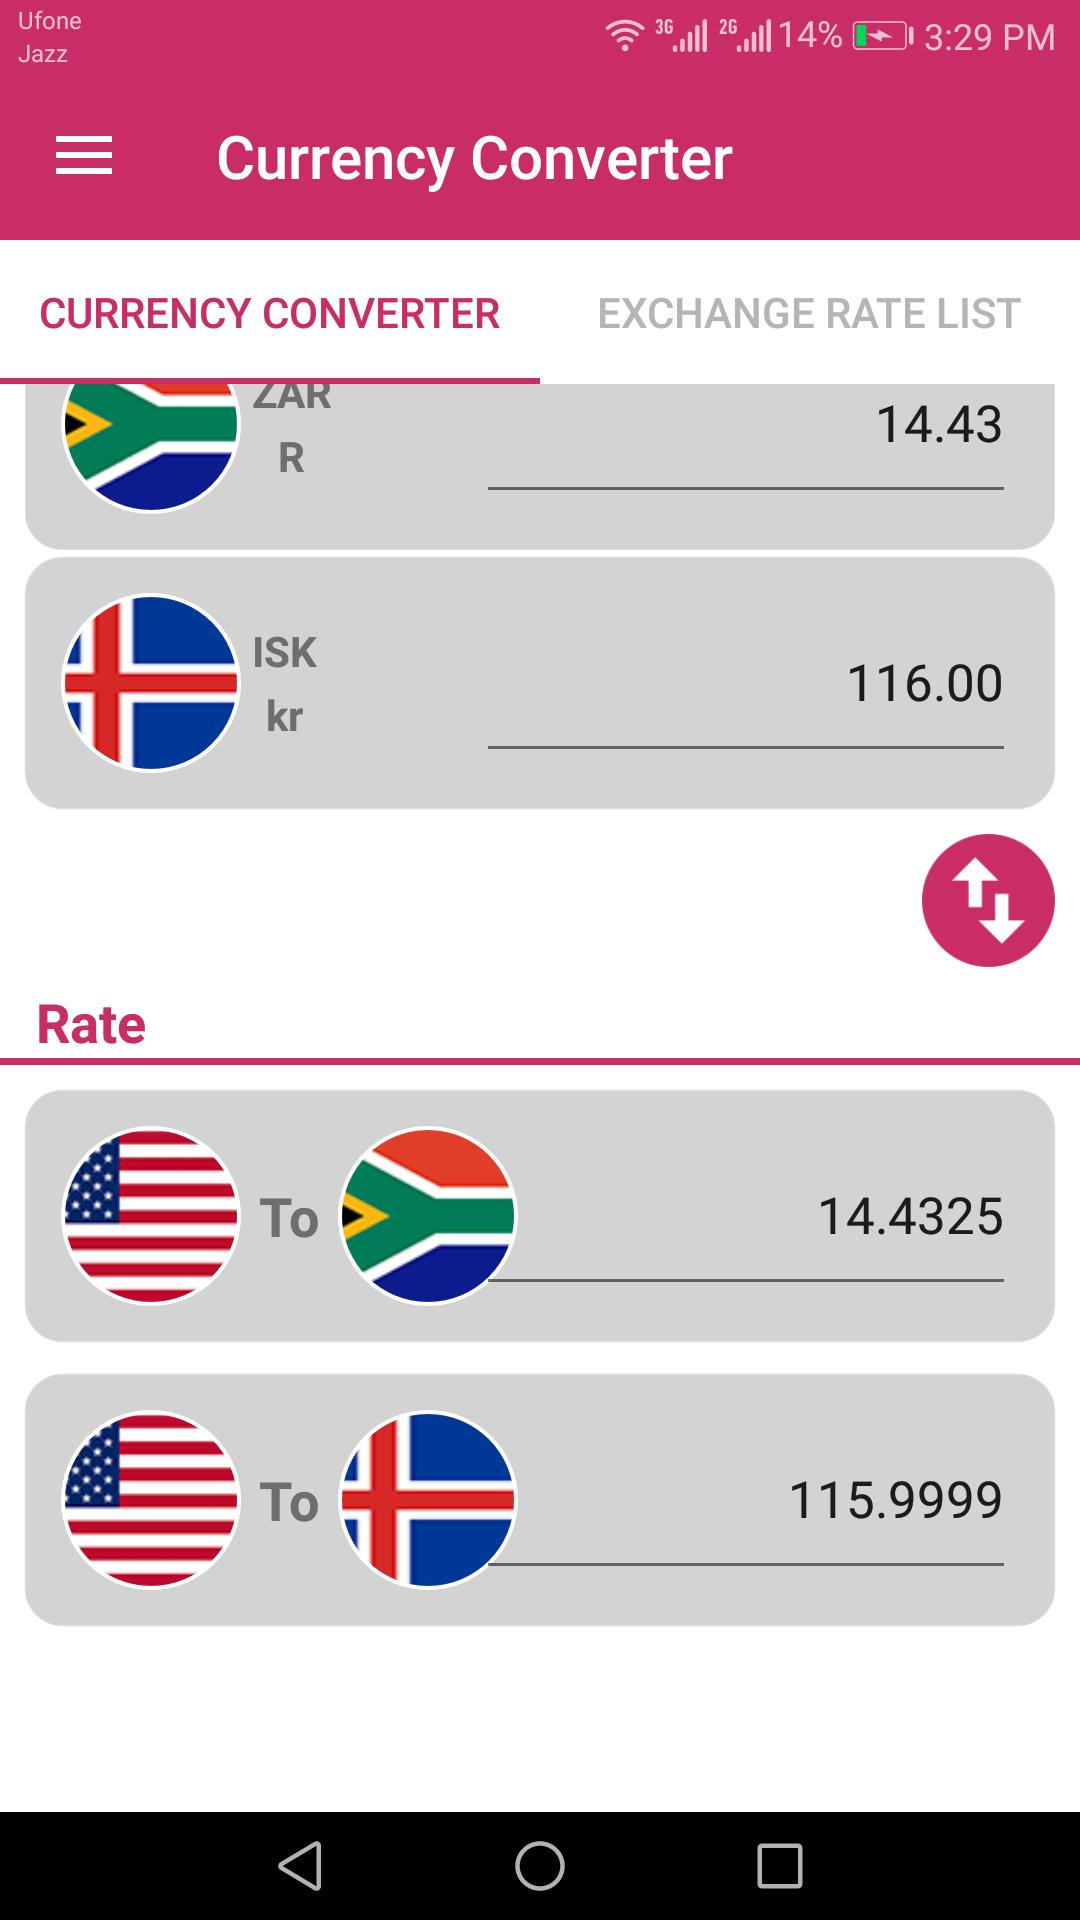 US Dollar To South African Rand and ISK Converter for Android ...